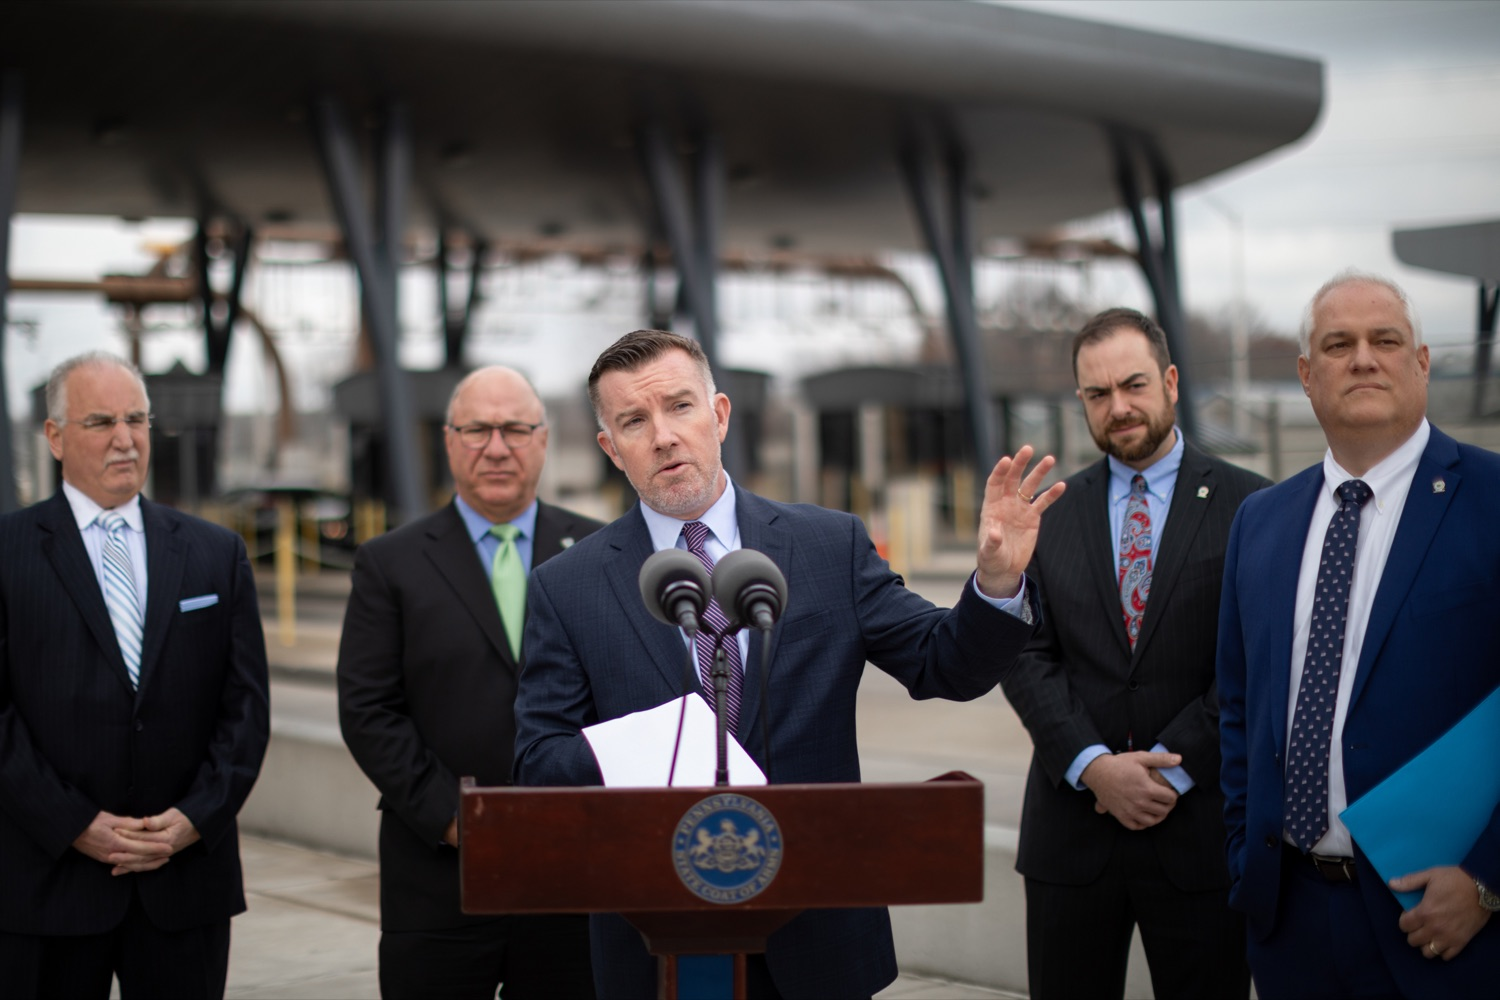 "<a href=""https://filesource.wostreaming.net/commonwealthofpa/photo/17799_Turnpike_Toll_Evasion_NK_001.JPG"" target=""_blank"">⇣ Download Photo<br></a>Mark Compton, Pennsylvania Turnpike Commission CEO, speaks during a press conference, which announced a partnership between the PA Turnpike Commission and Bucks County District Attorney to crack down on toll violators, or scofflaws, owing more than $2,000 in unpaid tolls, outside of the Turnpike Neshaminy Falls Mainline Toll Plaza on Wednesday, February 26, 2020."